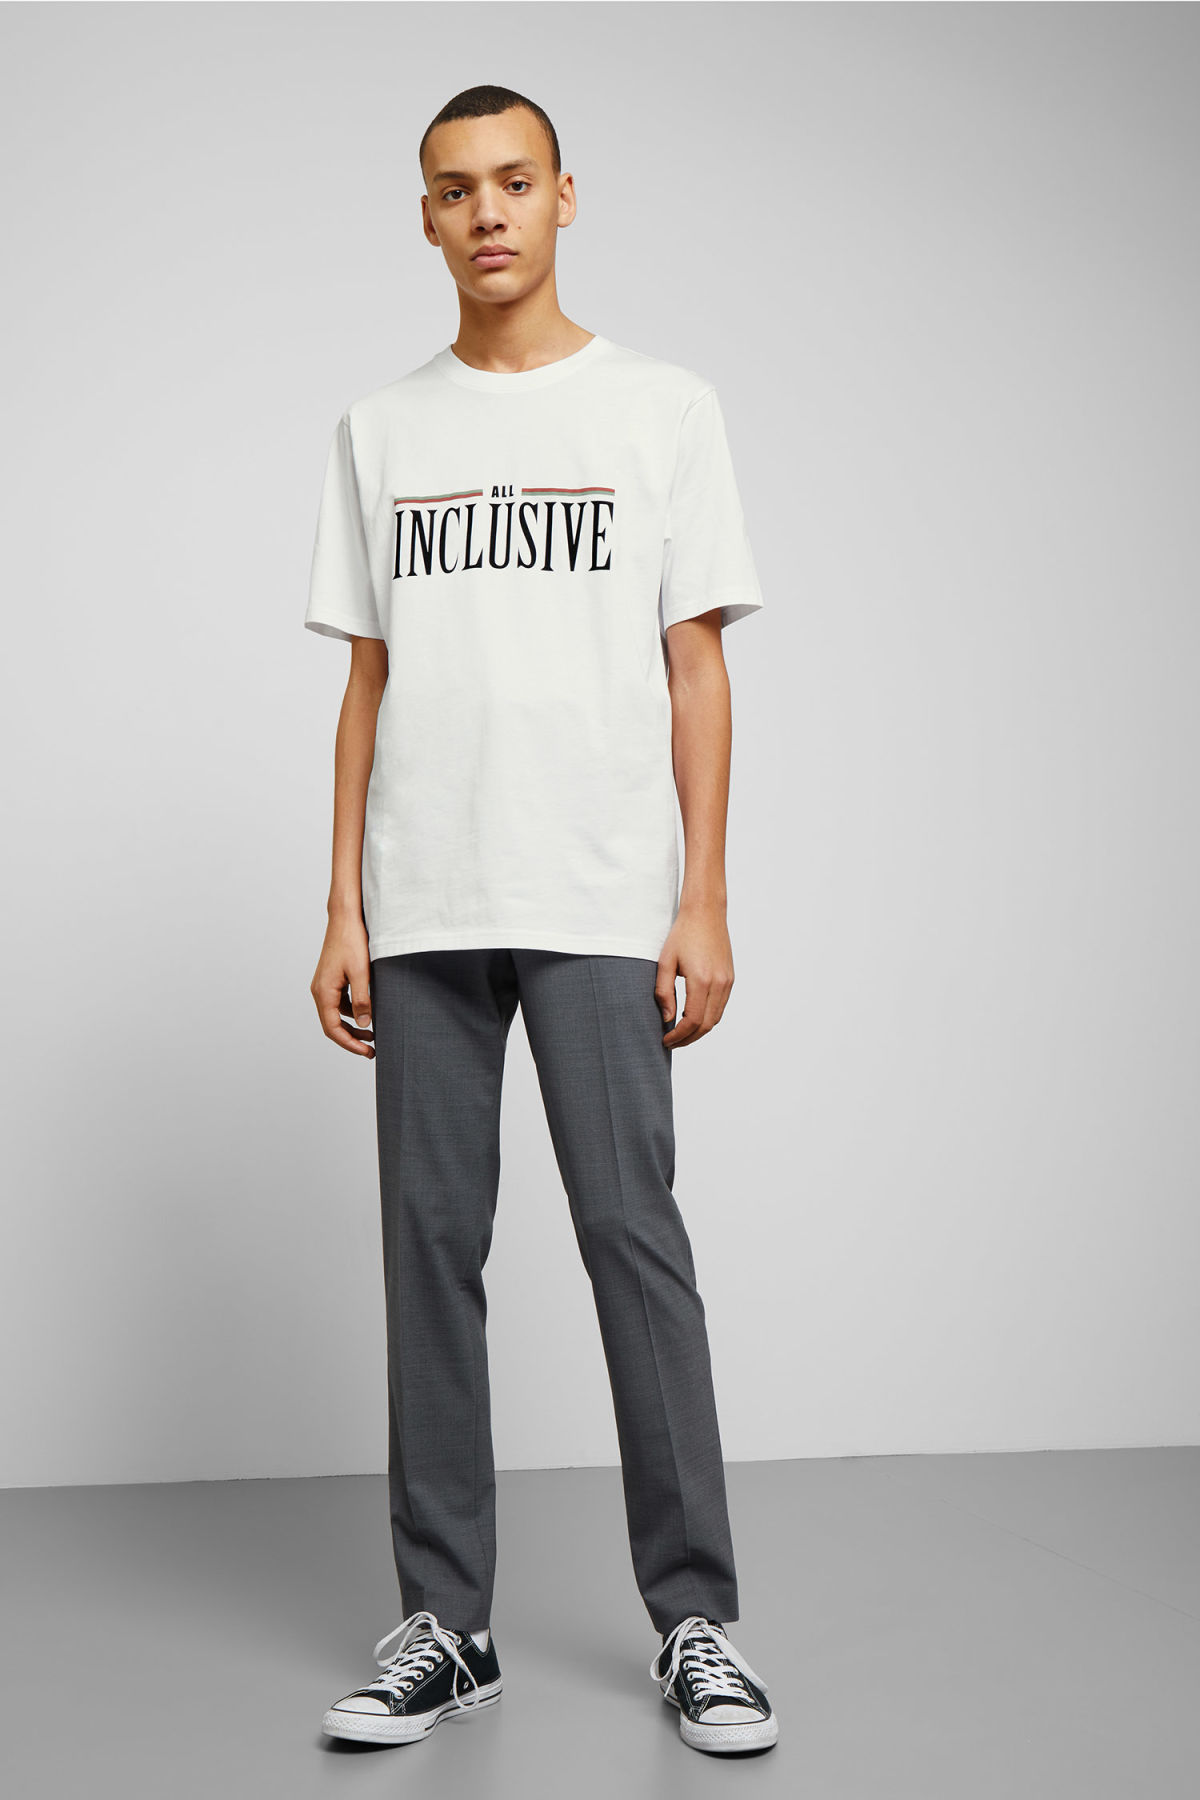 Model side image of Weekday frank all inclusive t-shirt in white